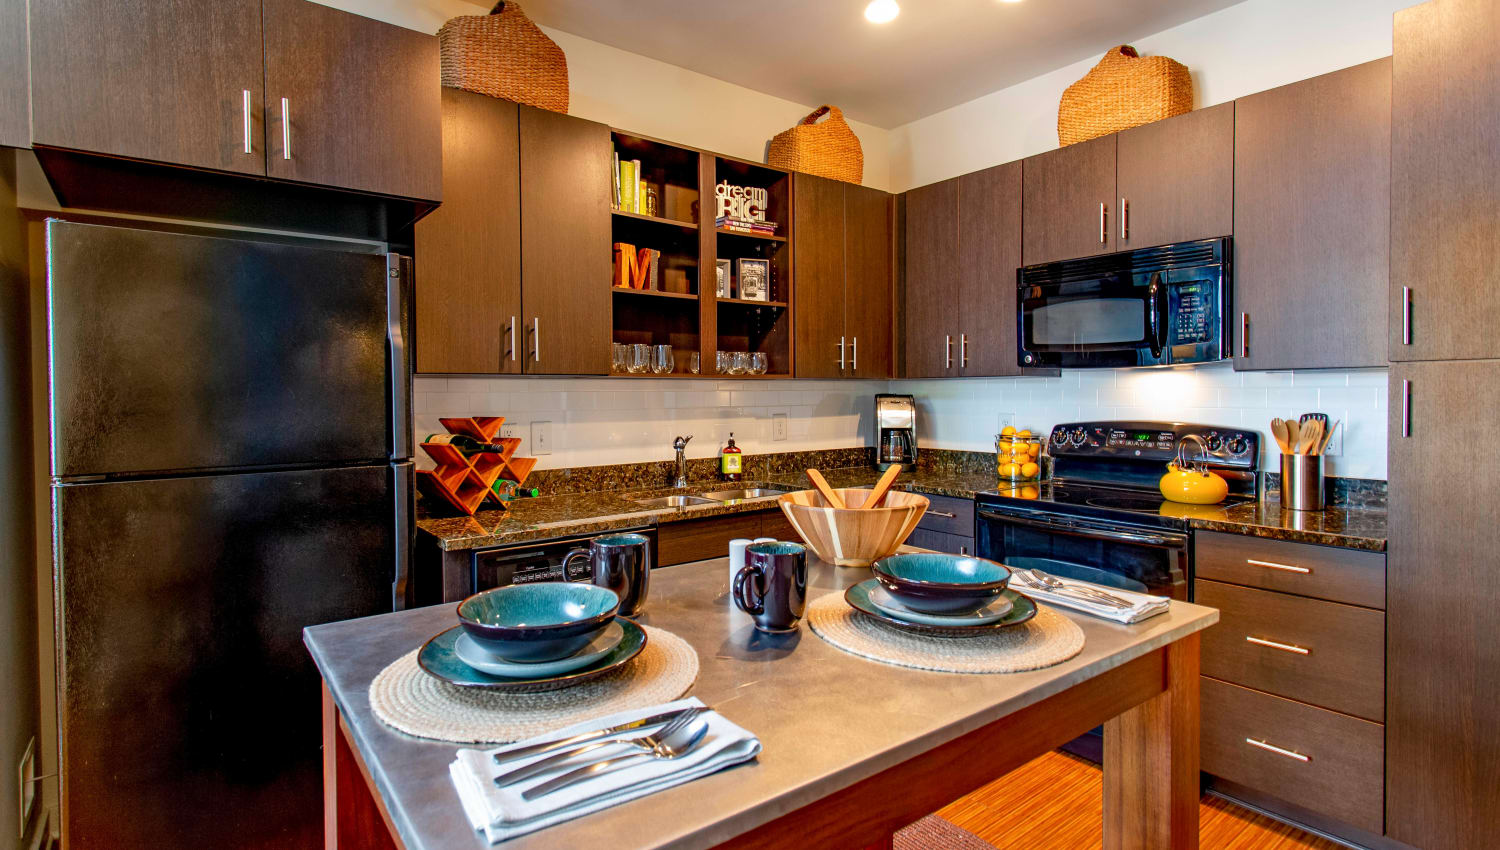 Gourmet kitchen with sleek black appliances and granite countertops in a model apartment at Olympus Midtown in Nashville, Tennessee